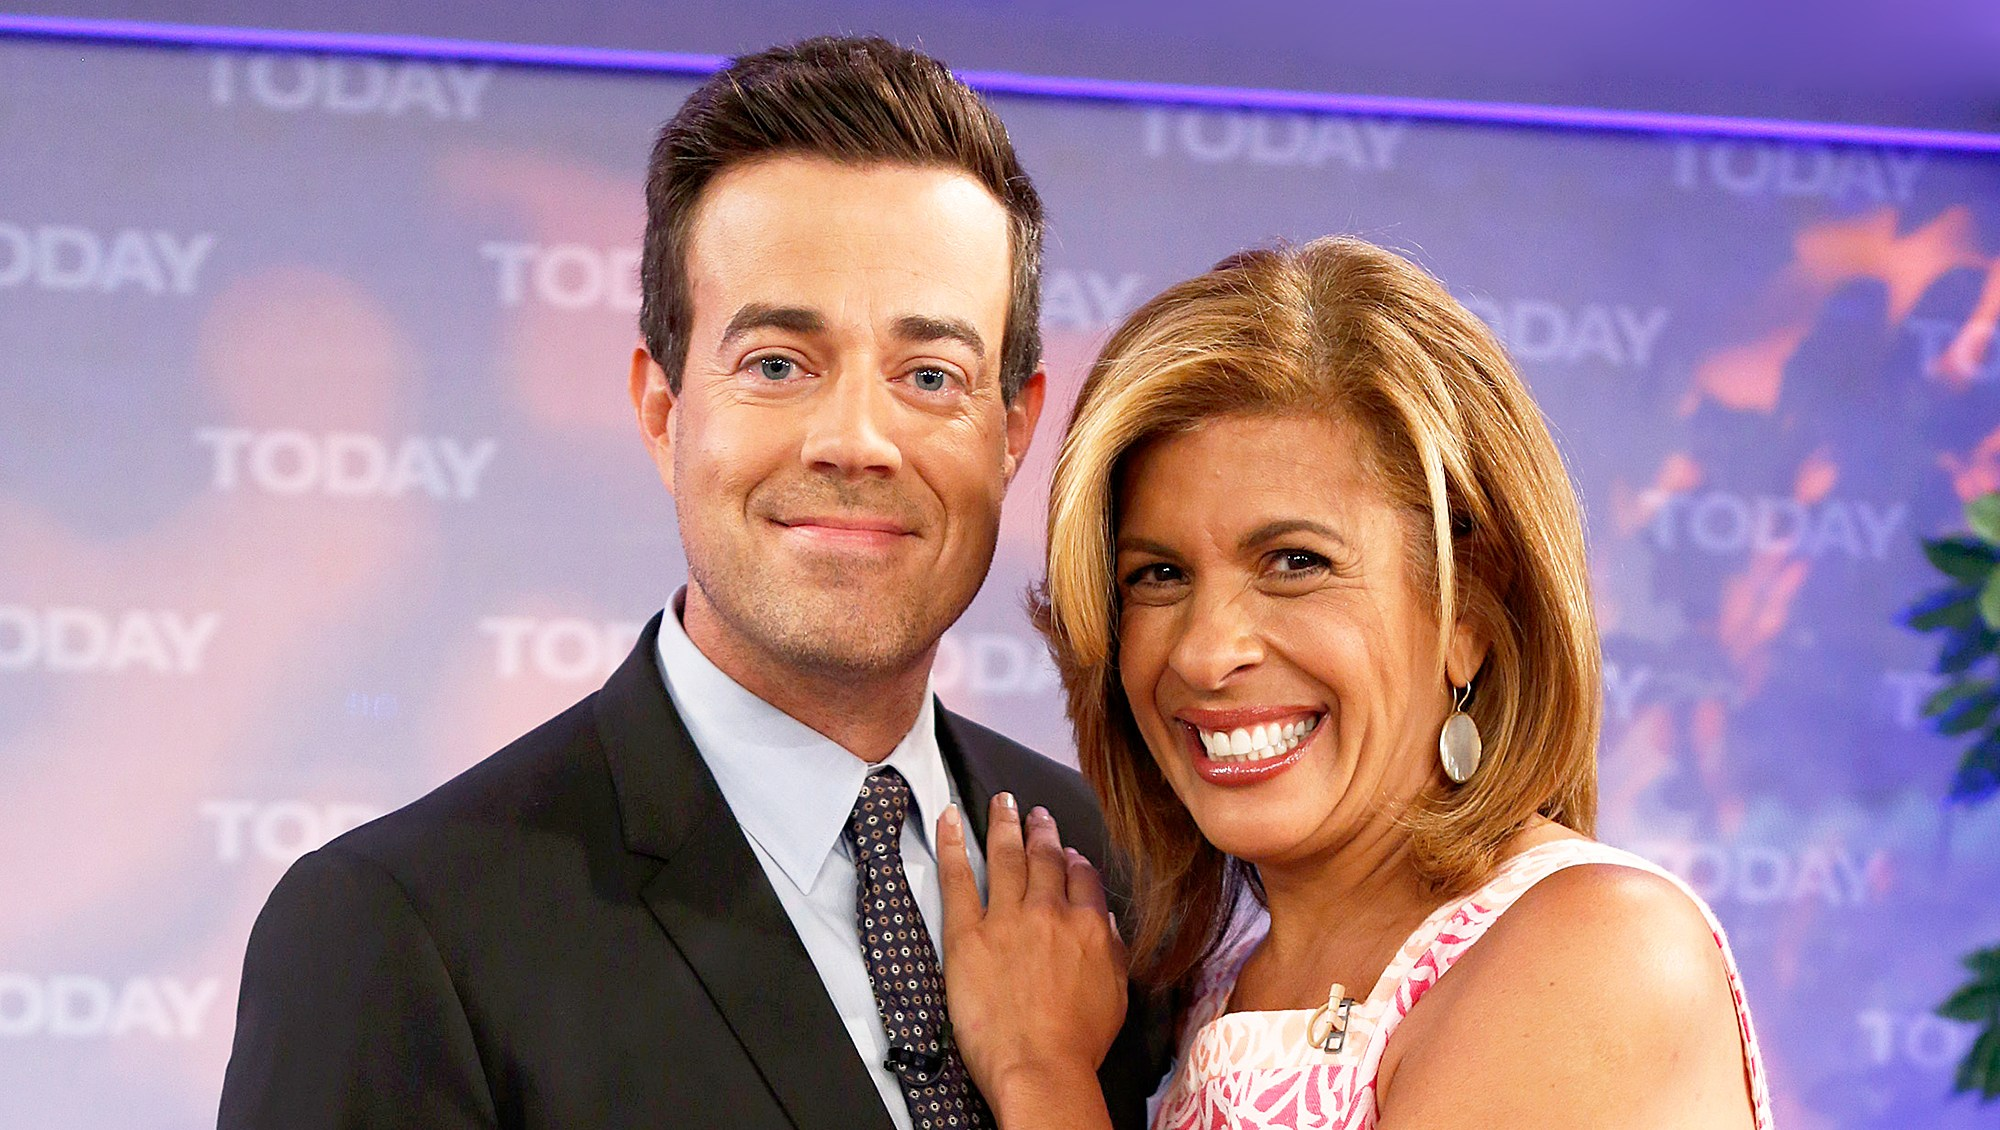 Carson Daly and Hoda Kotb on 'Today' show